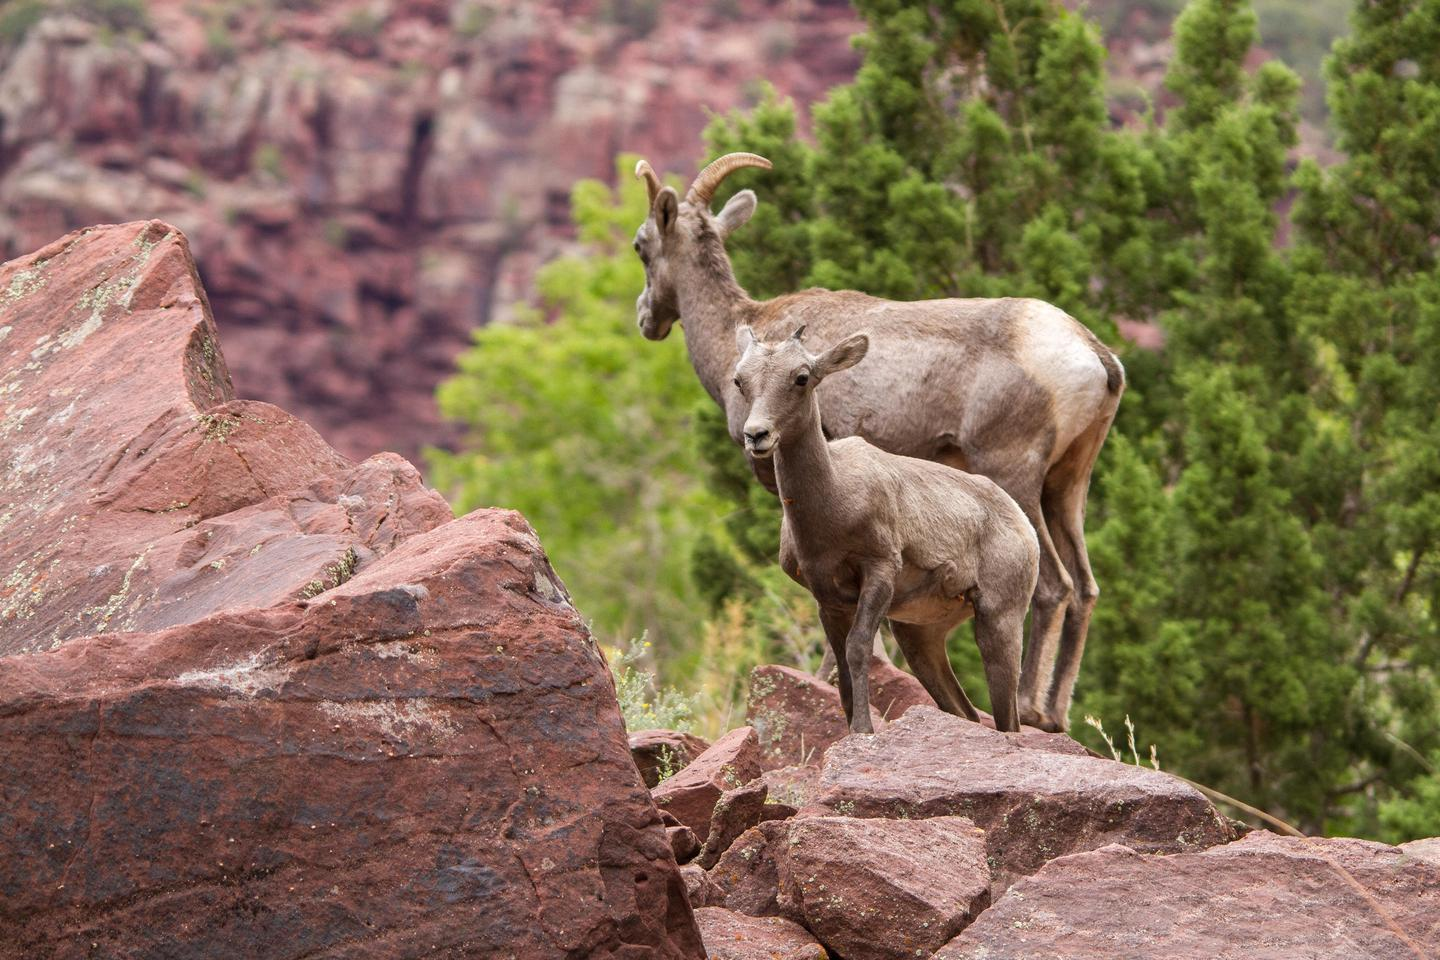 Rocky Mountain BighornsVisitors to Dinosaur may also see its diversity of wildlife including Rocky Mountain bighorn sheep.